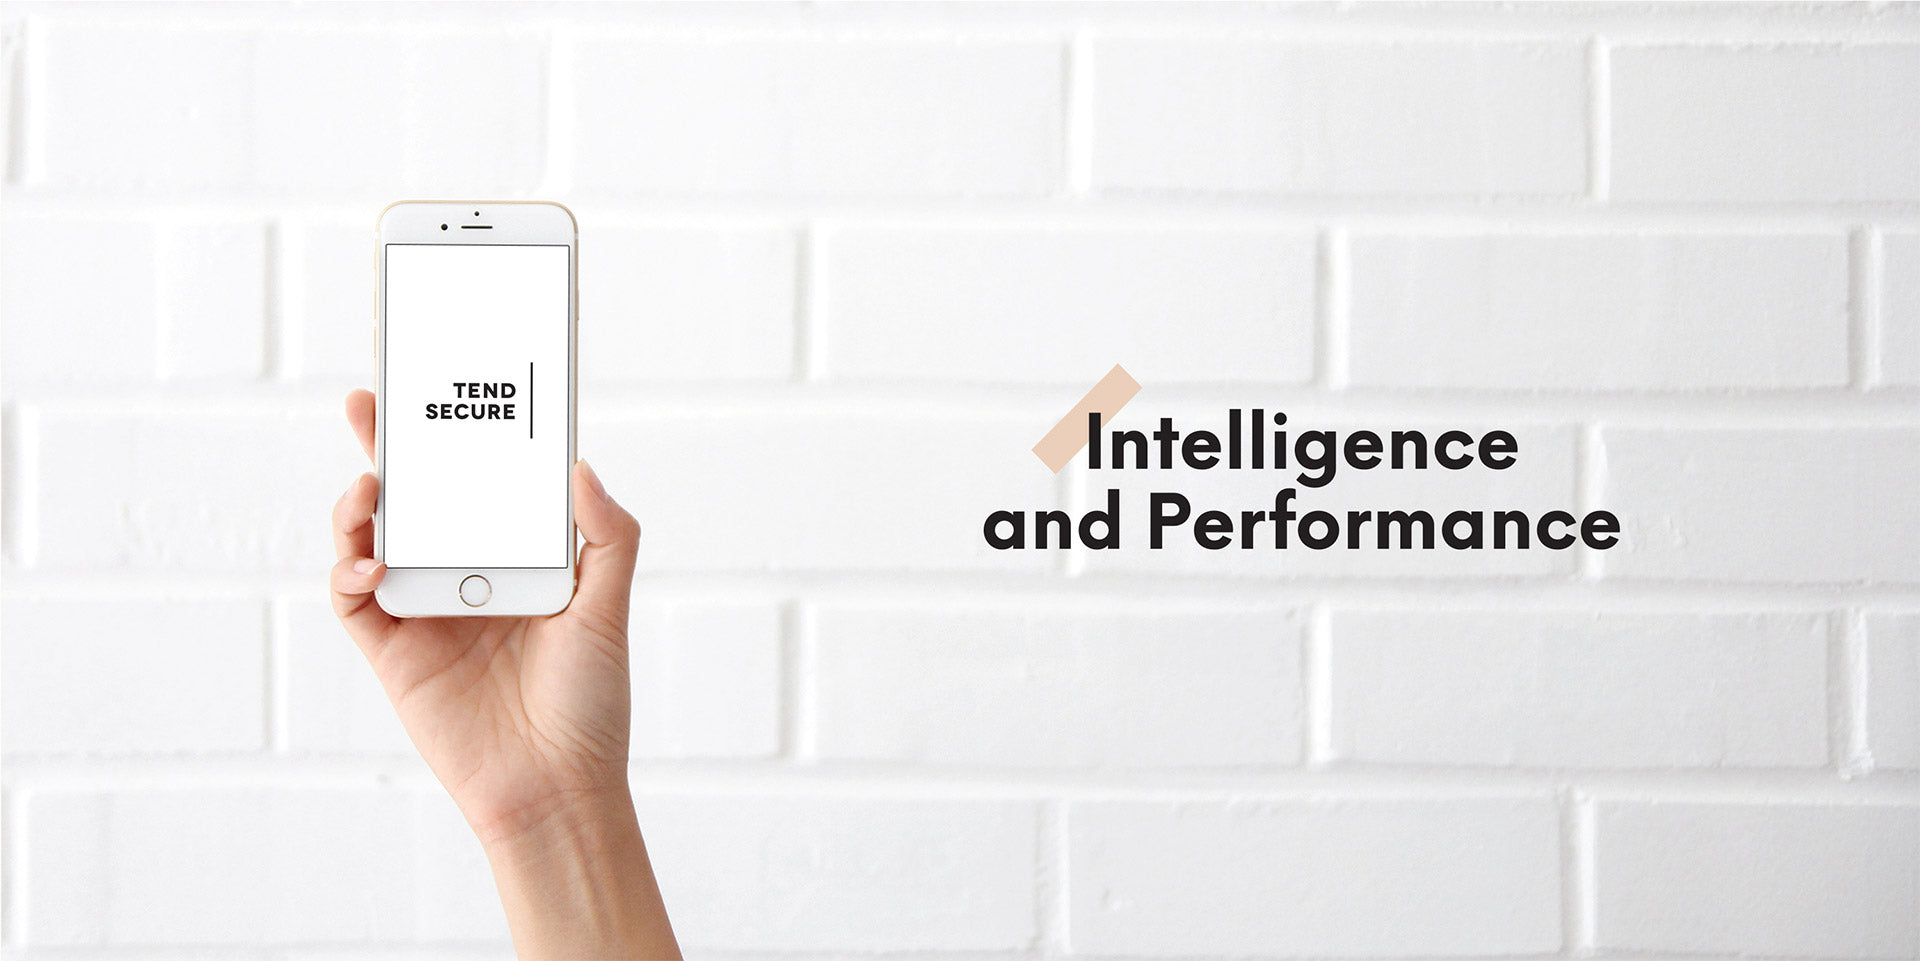 Intelligence and Performance